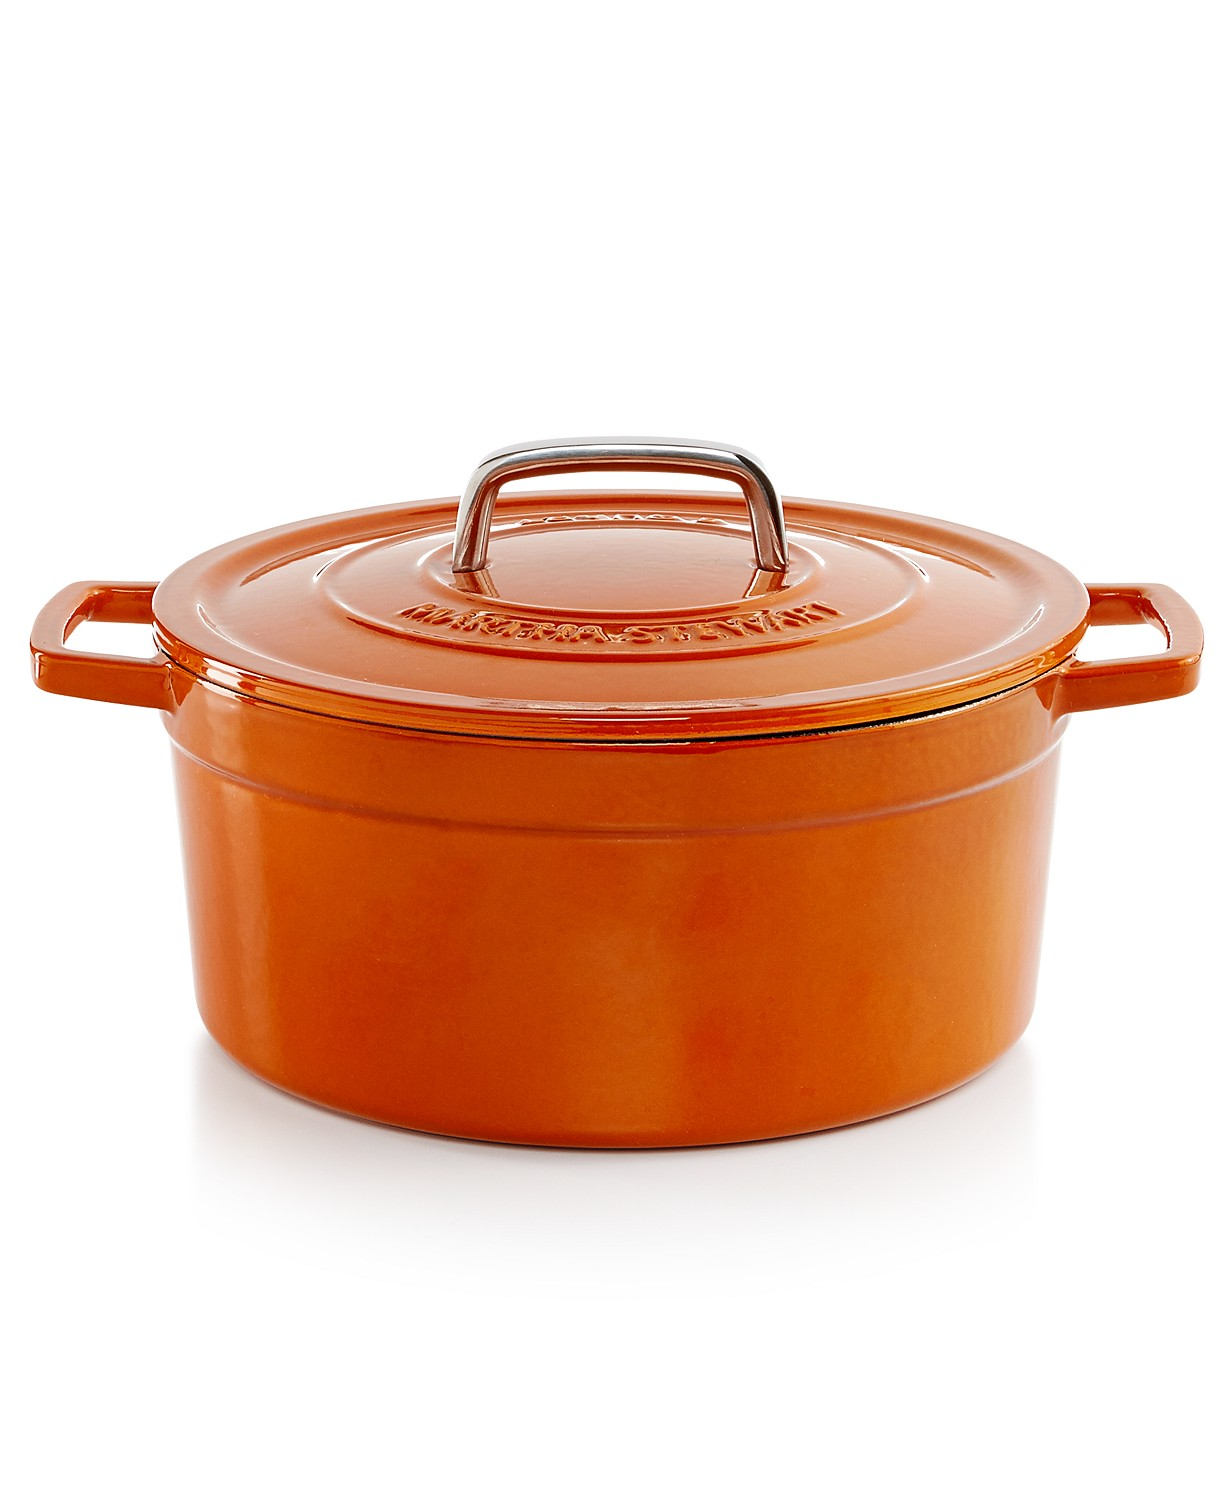 Save 72% on Martha Stewart Collection Enameled Cast Iron 6 Qt. Round Dutch Oven